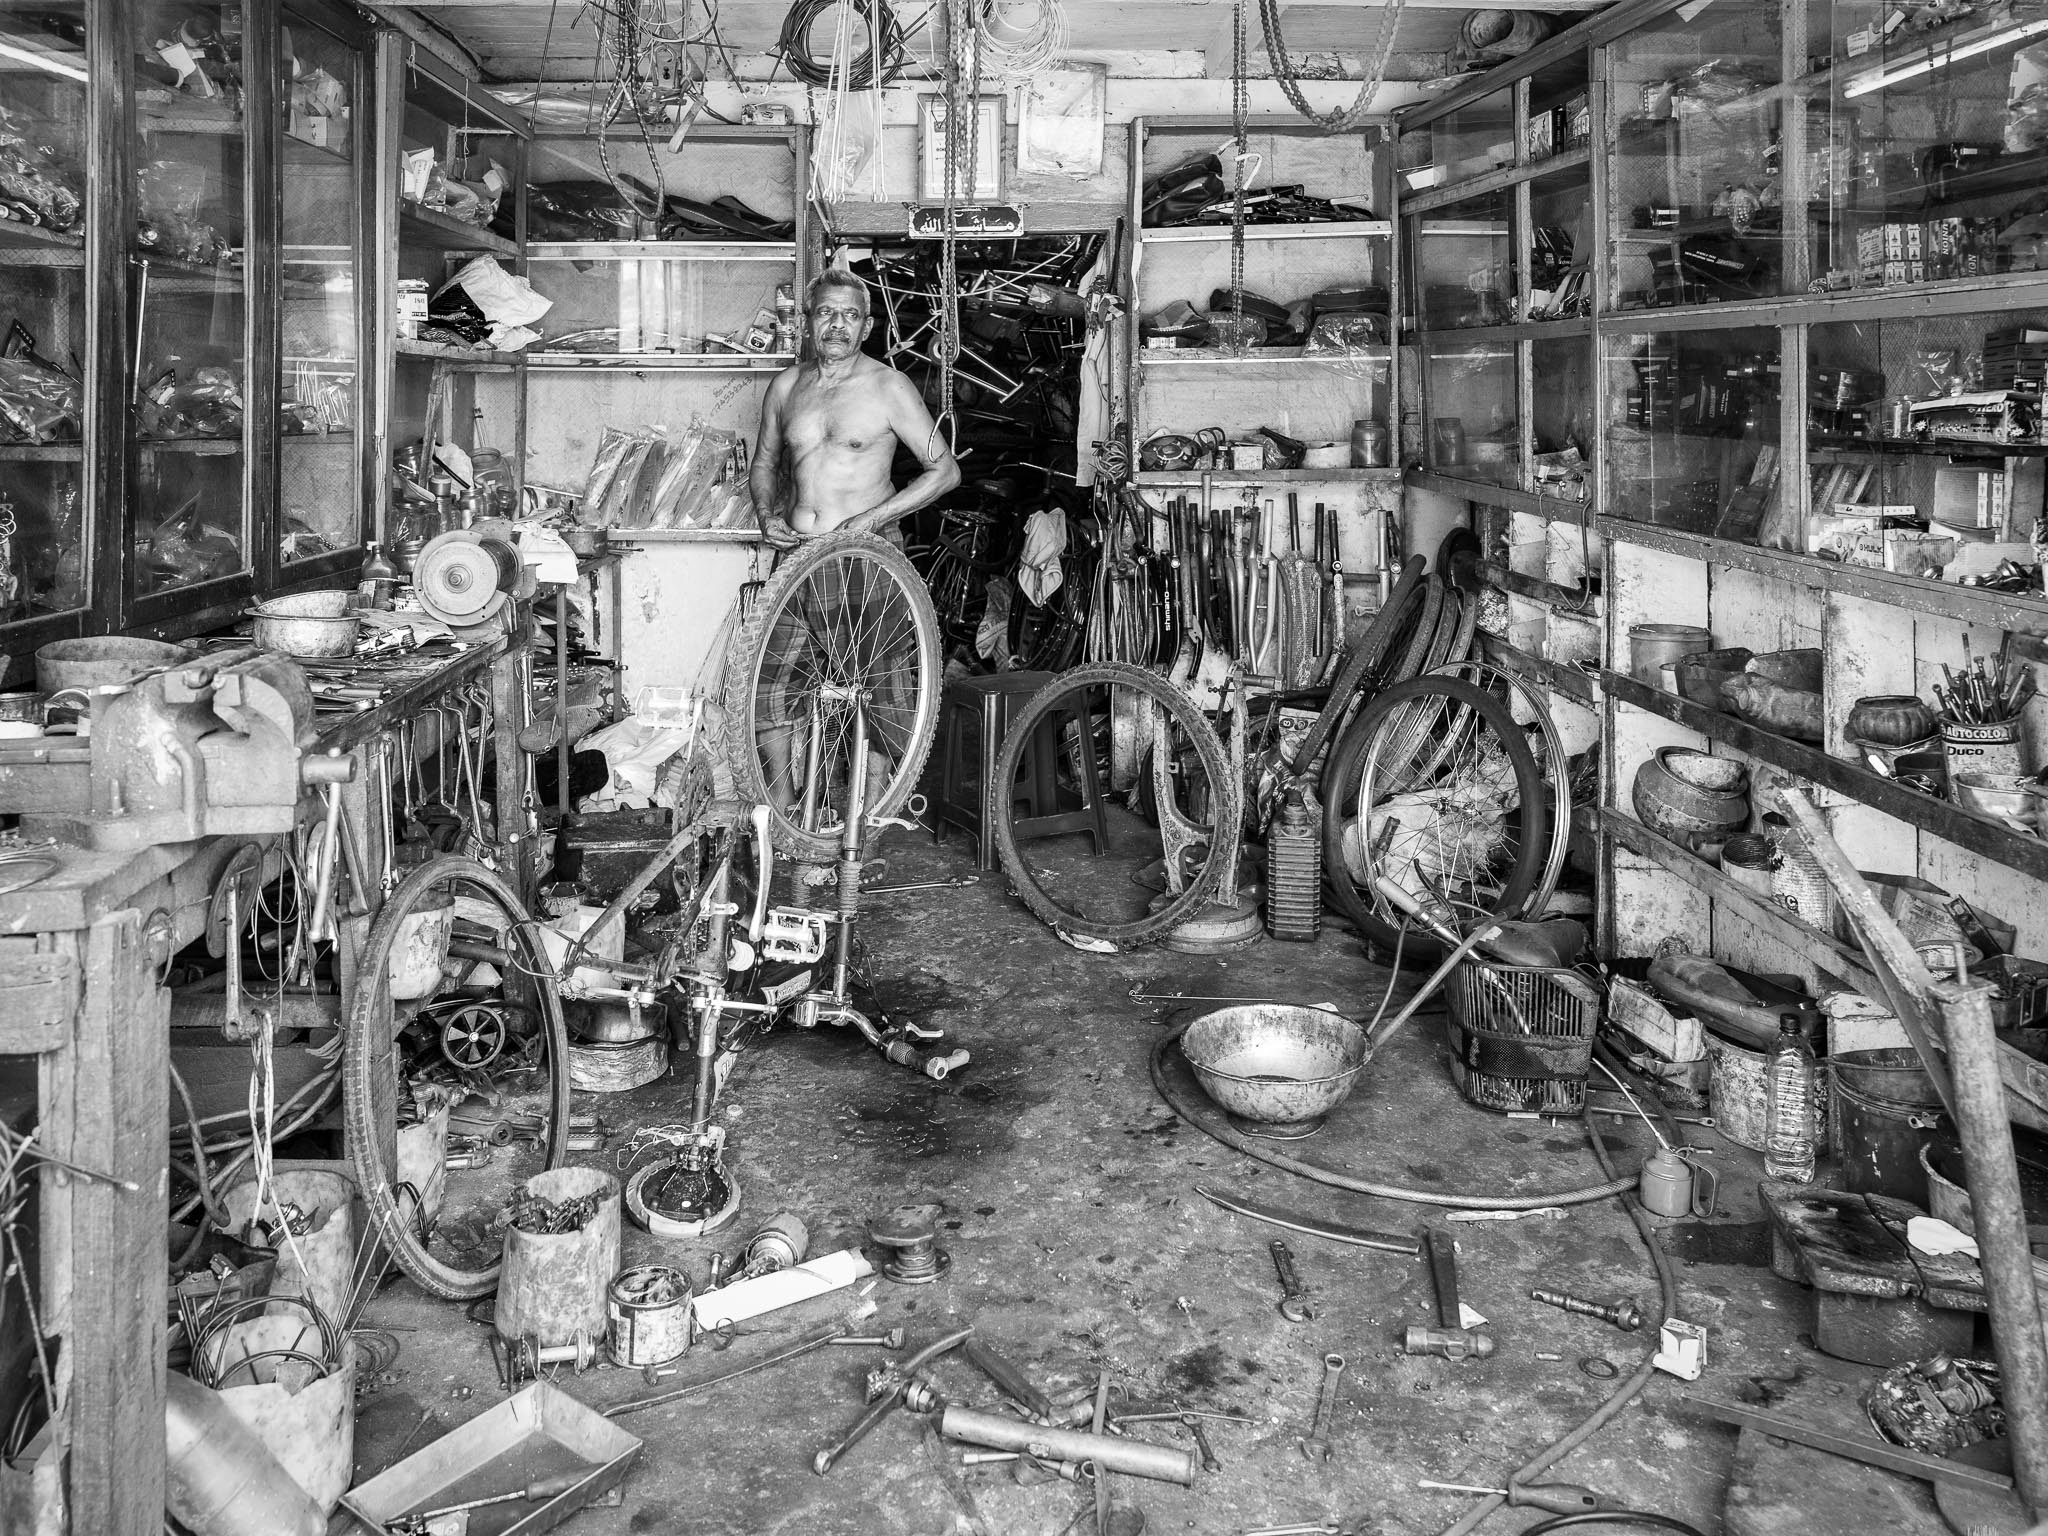 He will clean up his workshop ... tomorrow. (Leica Q)